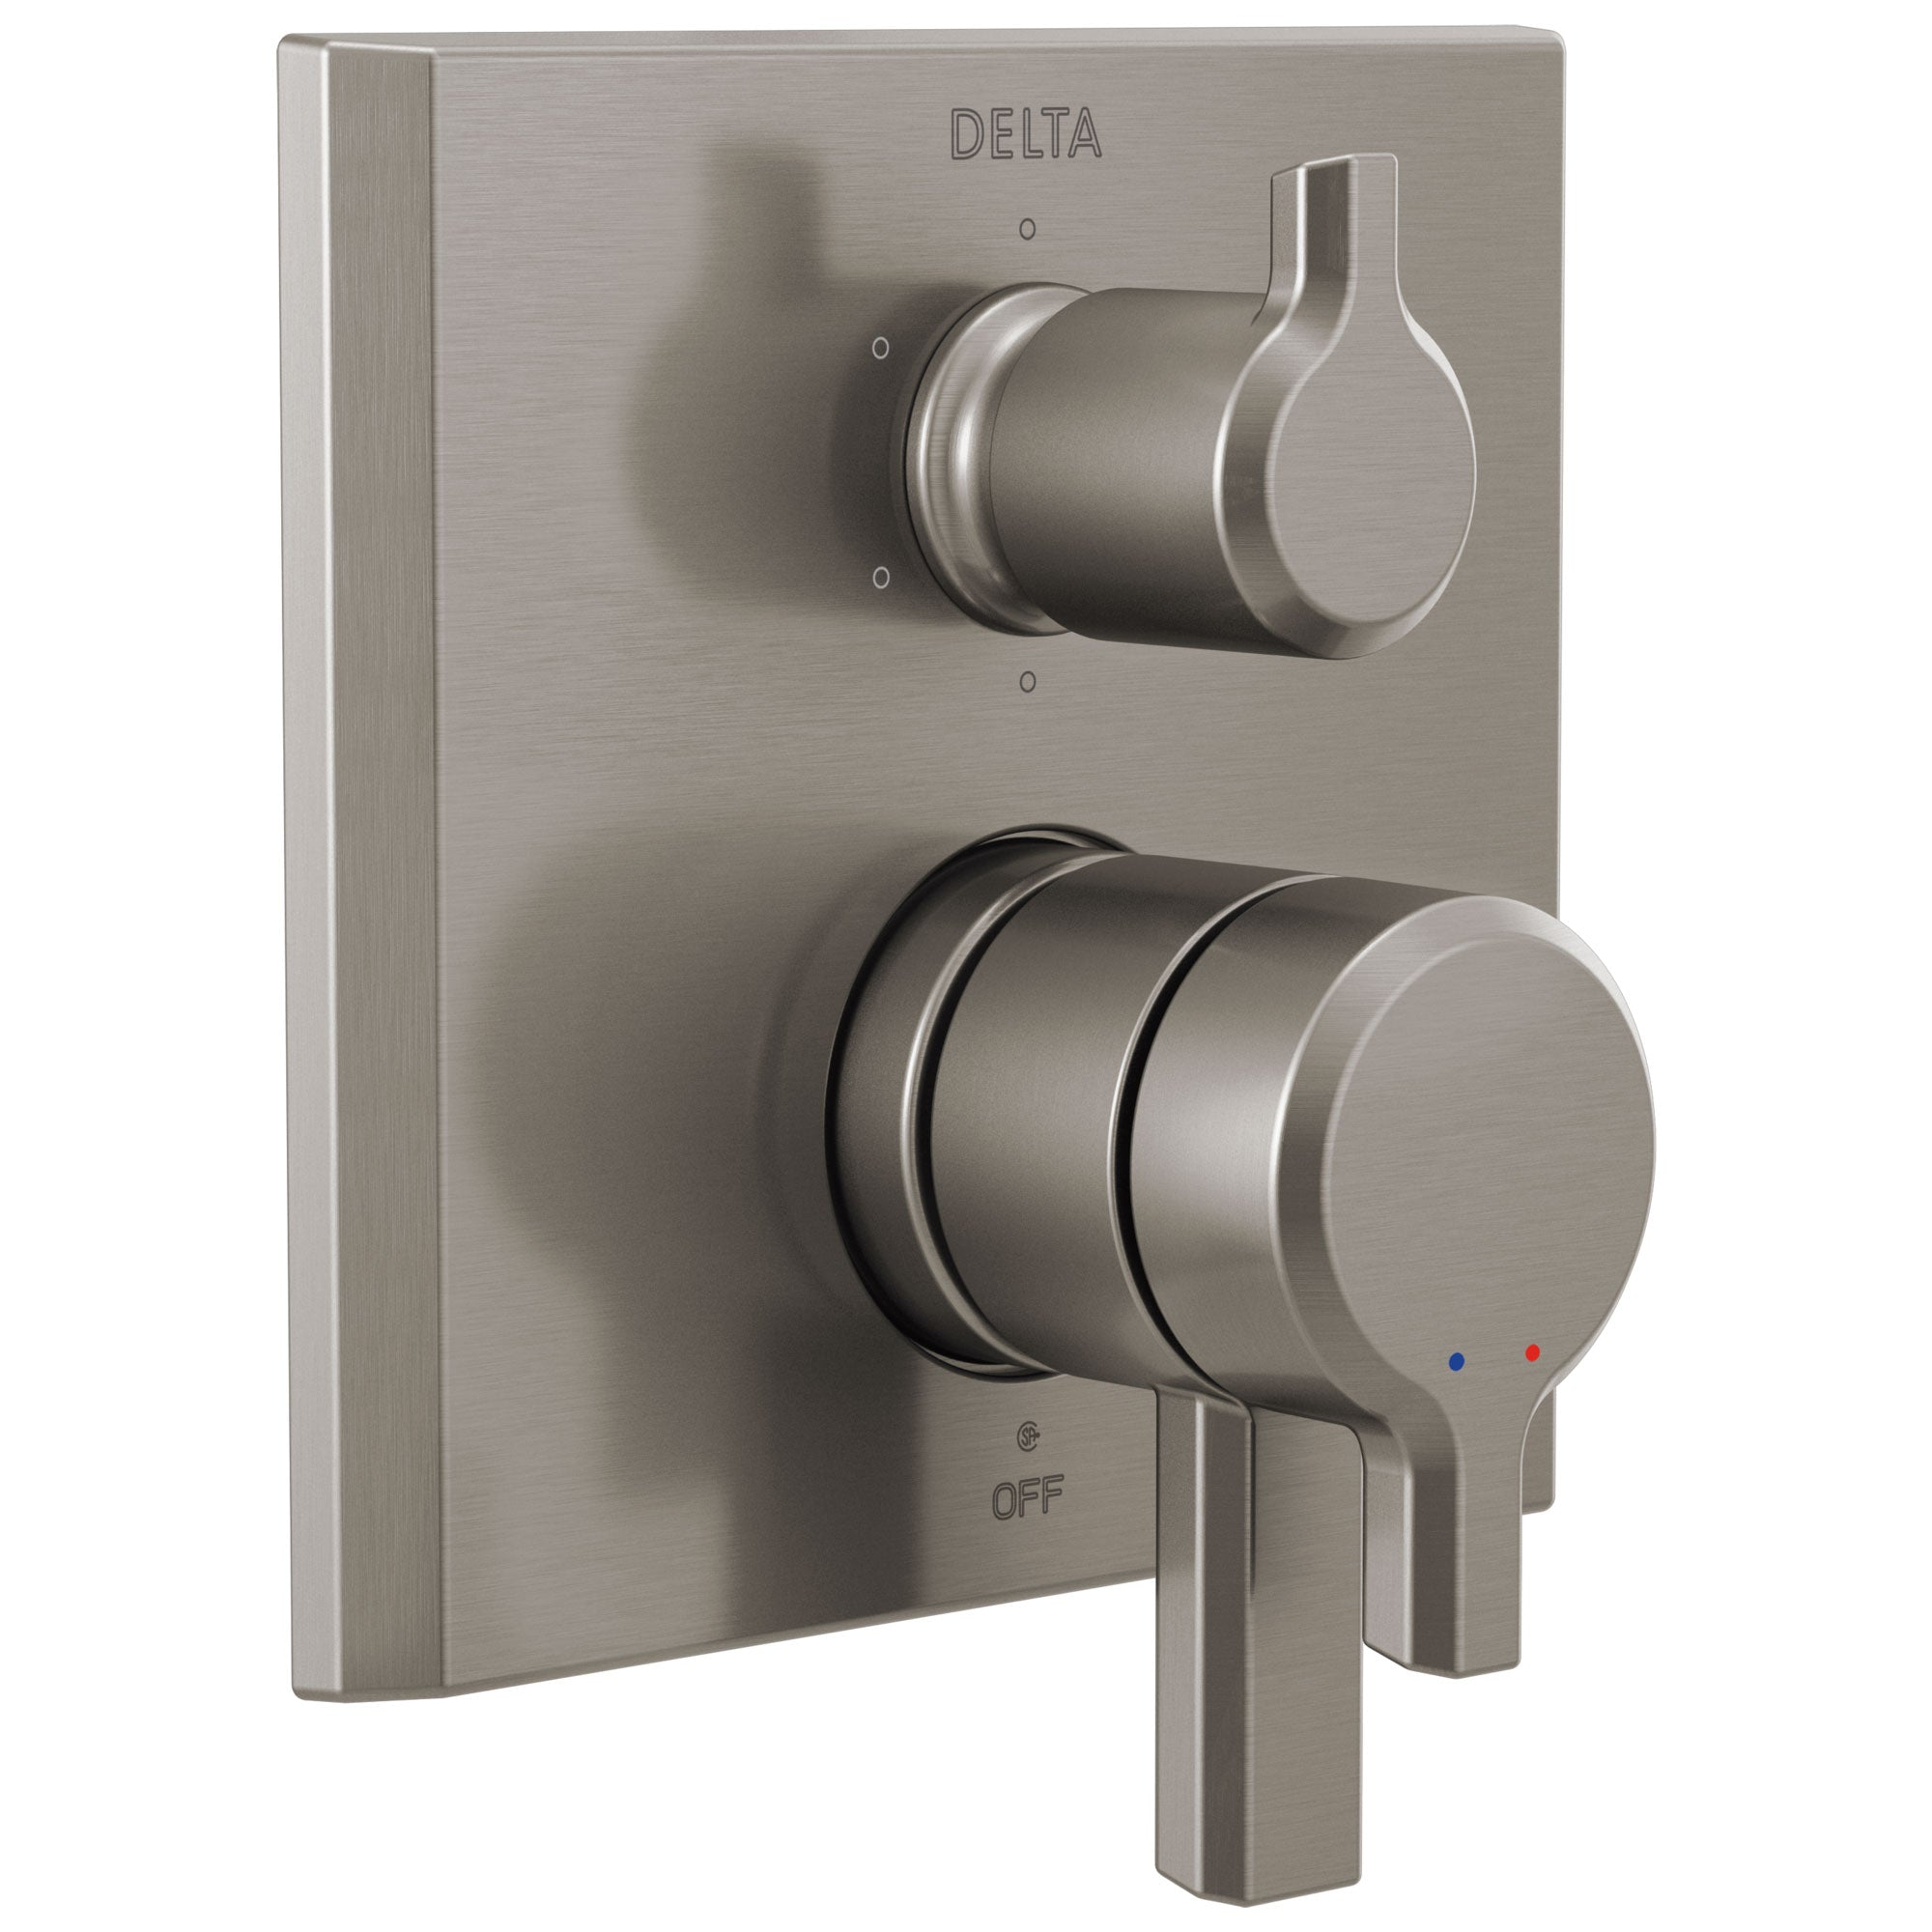 Delta Pivotal Stainless Steel Finish Monitor 17 Series Shower System Control with 6-Setting Diverter Includes Rough-in Valve and Handles D3696V